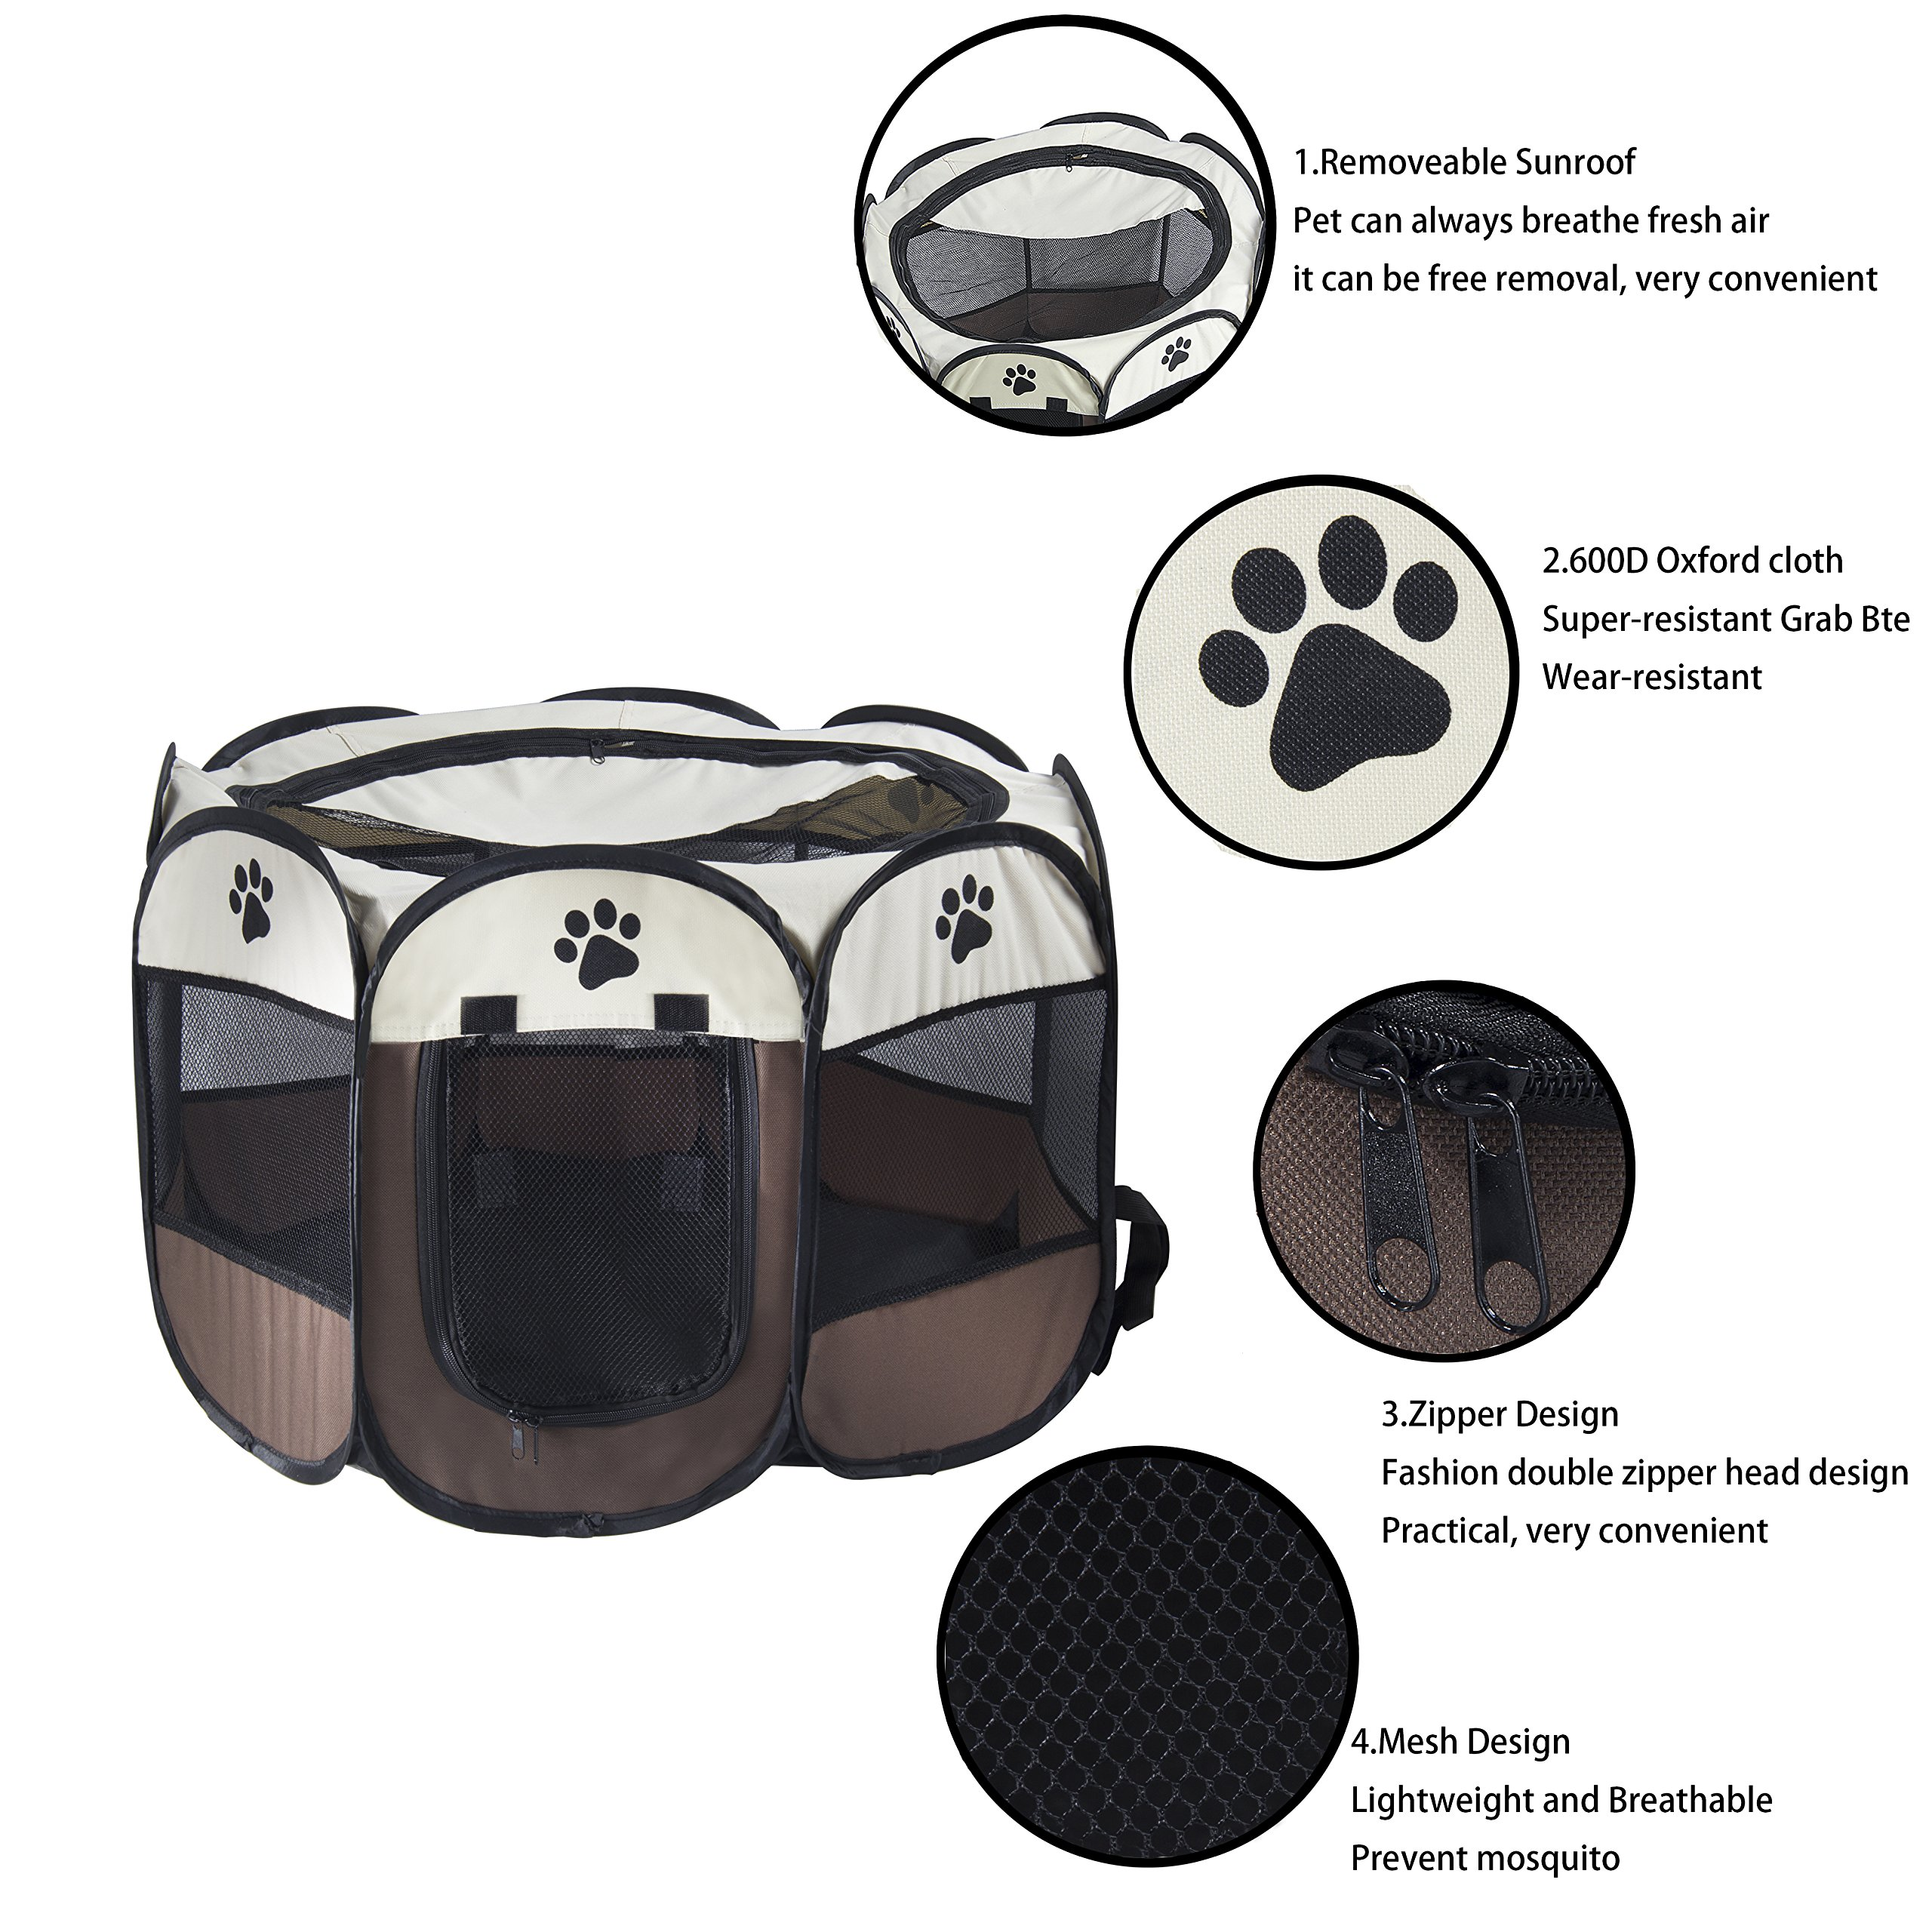 MiLuck Pet Portable Foldable Playpen, Exercise 8-Panel Kennel Mesh Shade Cover Indoor/outdoor Tent Fence For Dogs Cats(L/Brown) by MiLuck (Image #3)